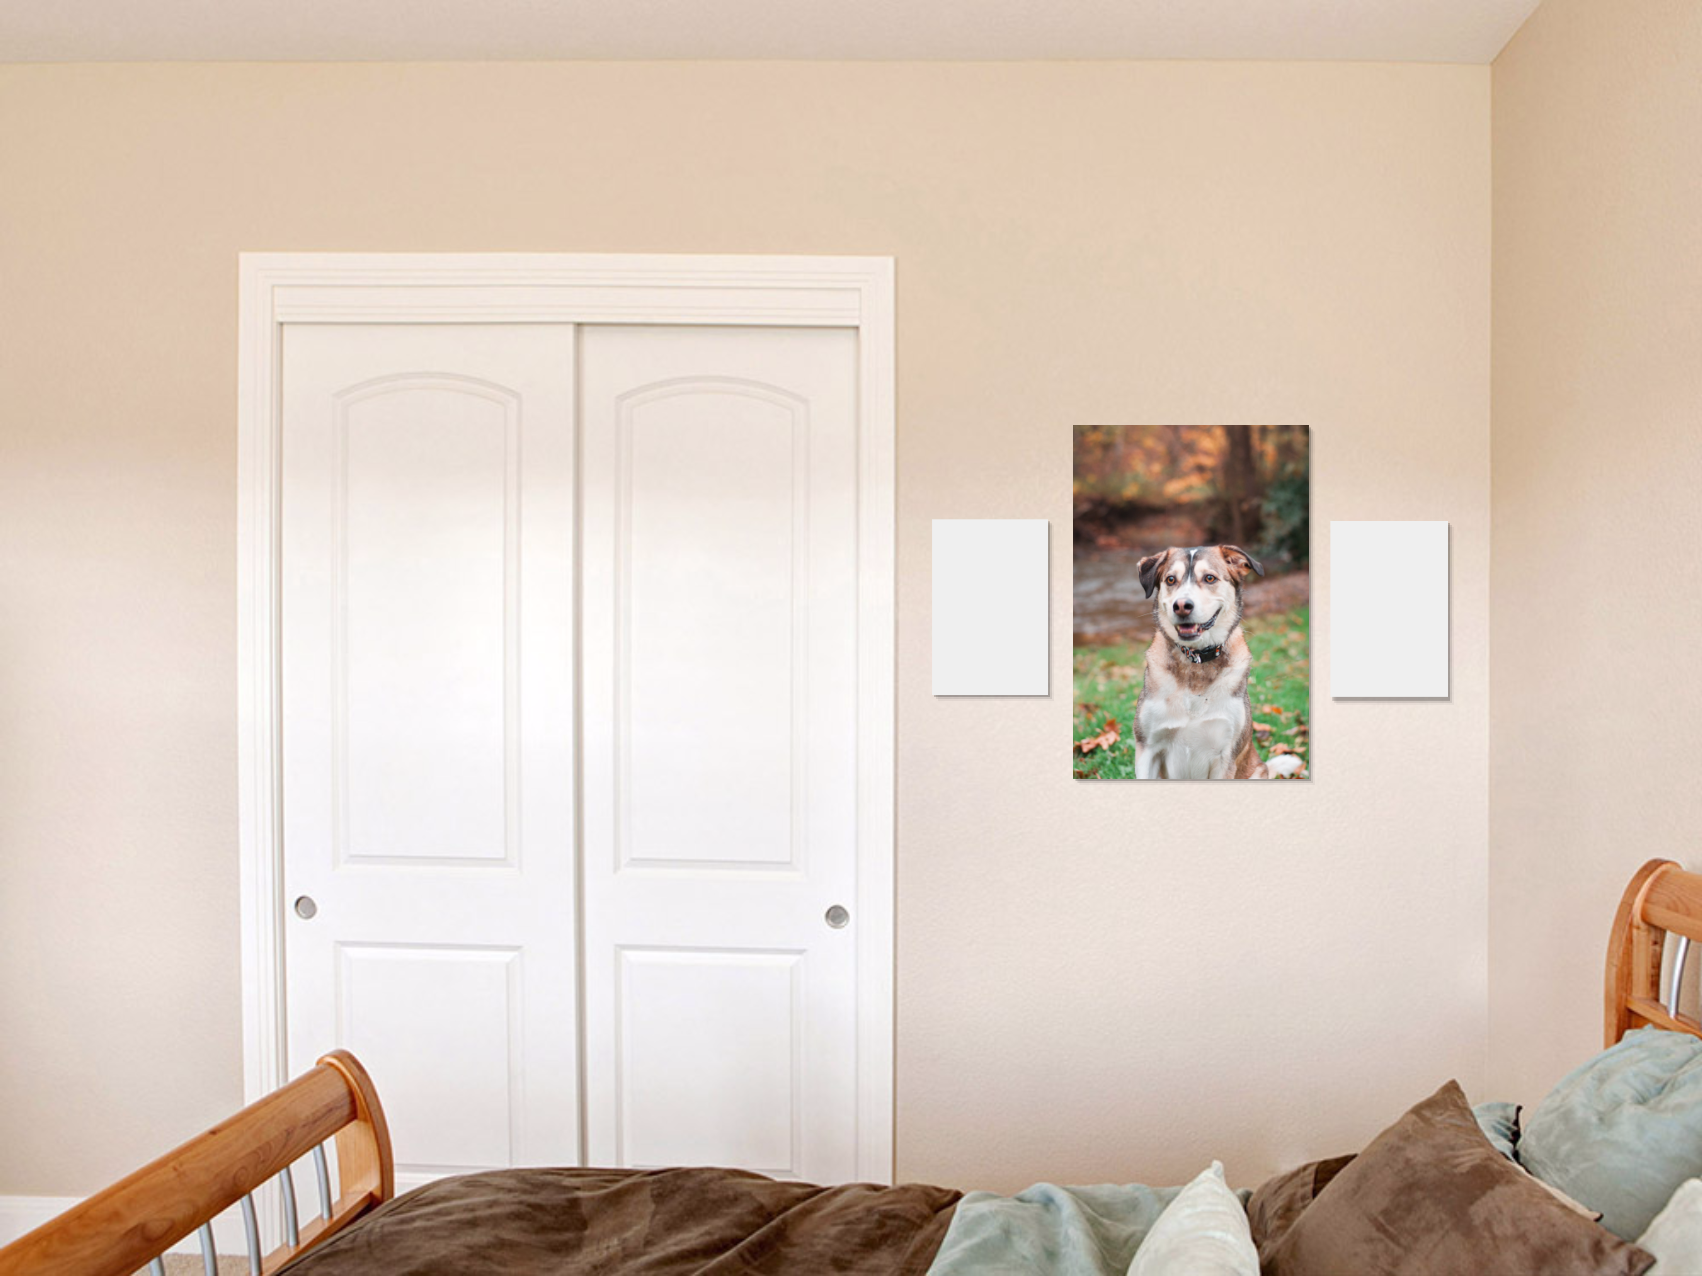 24x26 wall art with 12x8s canvases